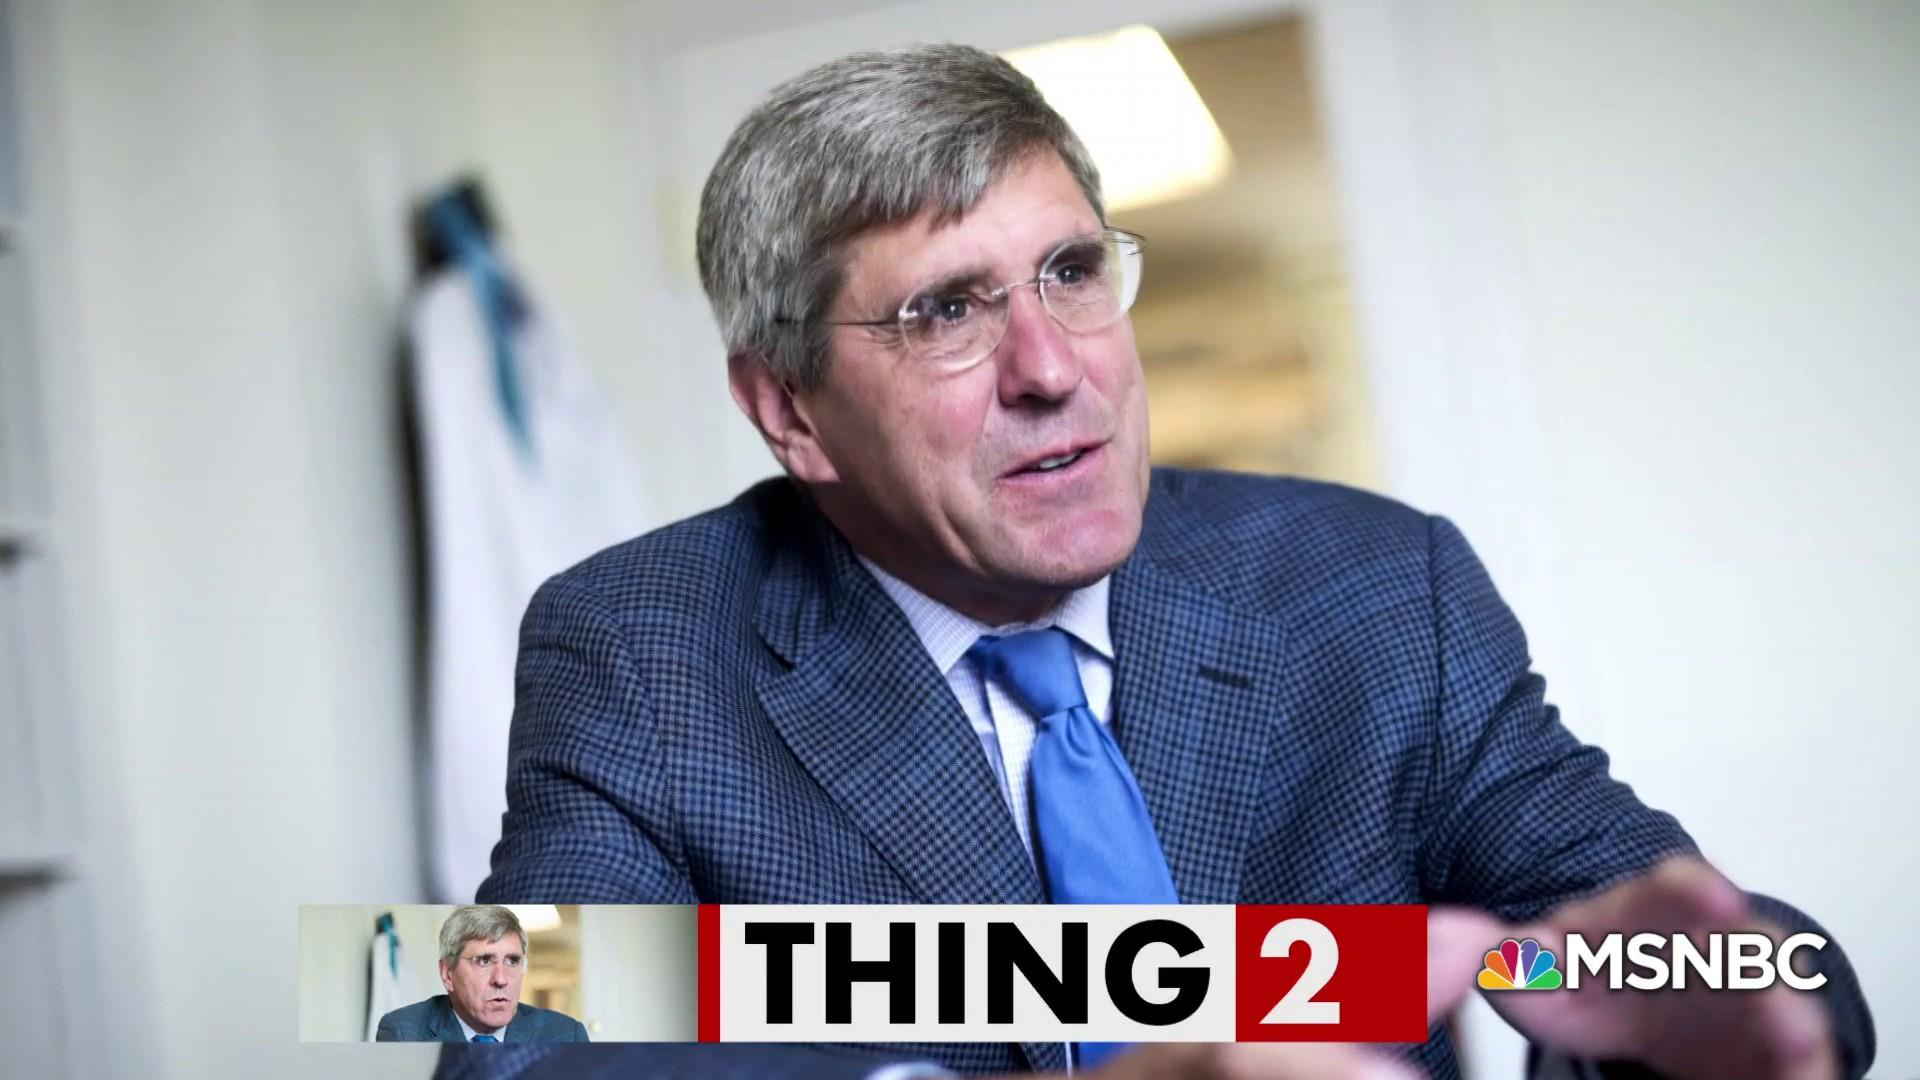 Stephen Moore is not so great at defending himself